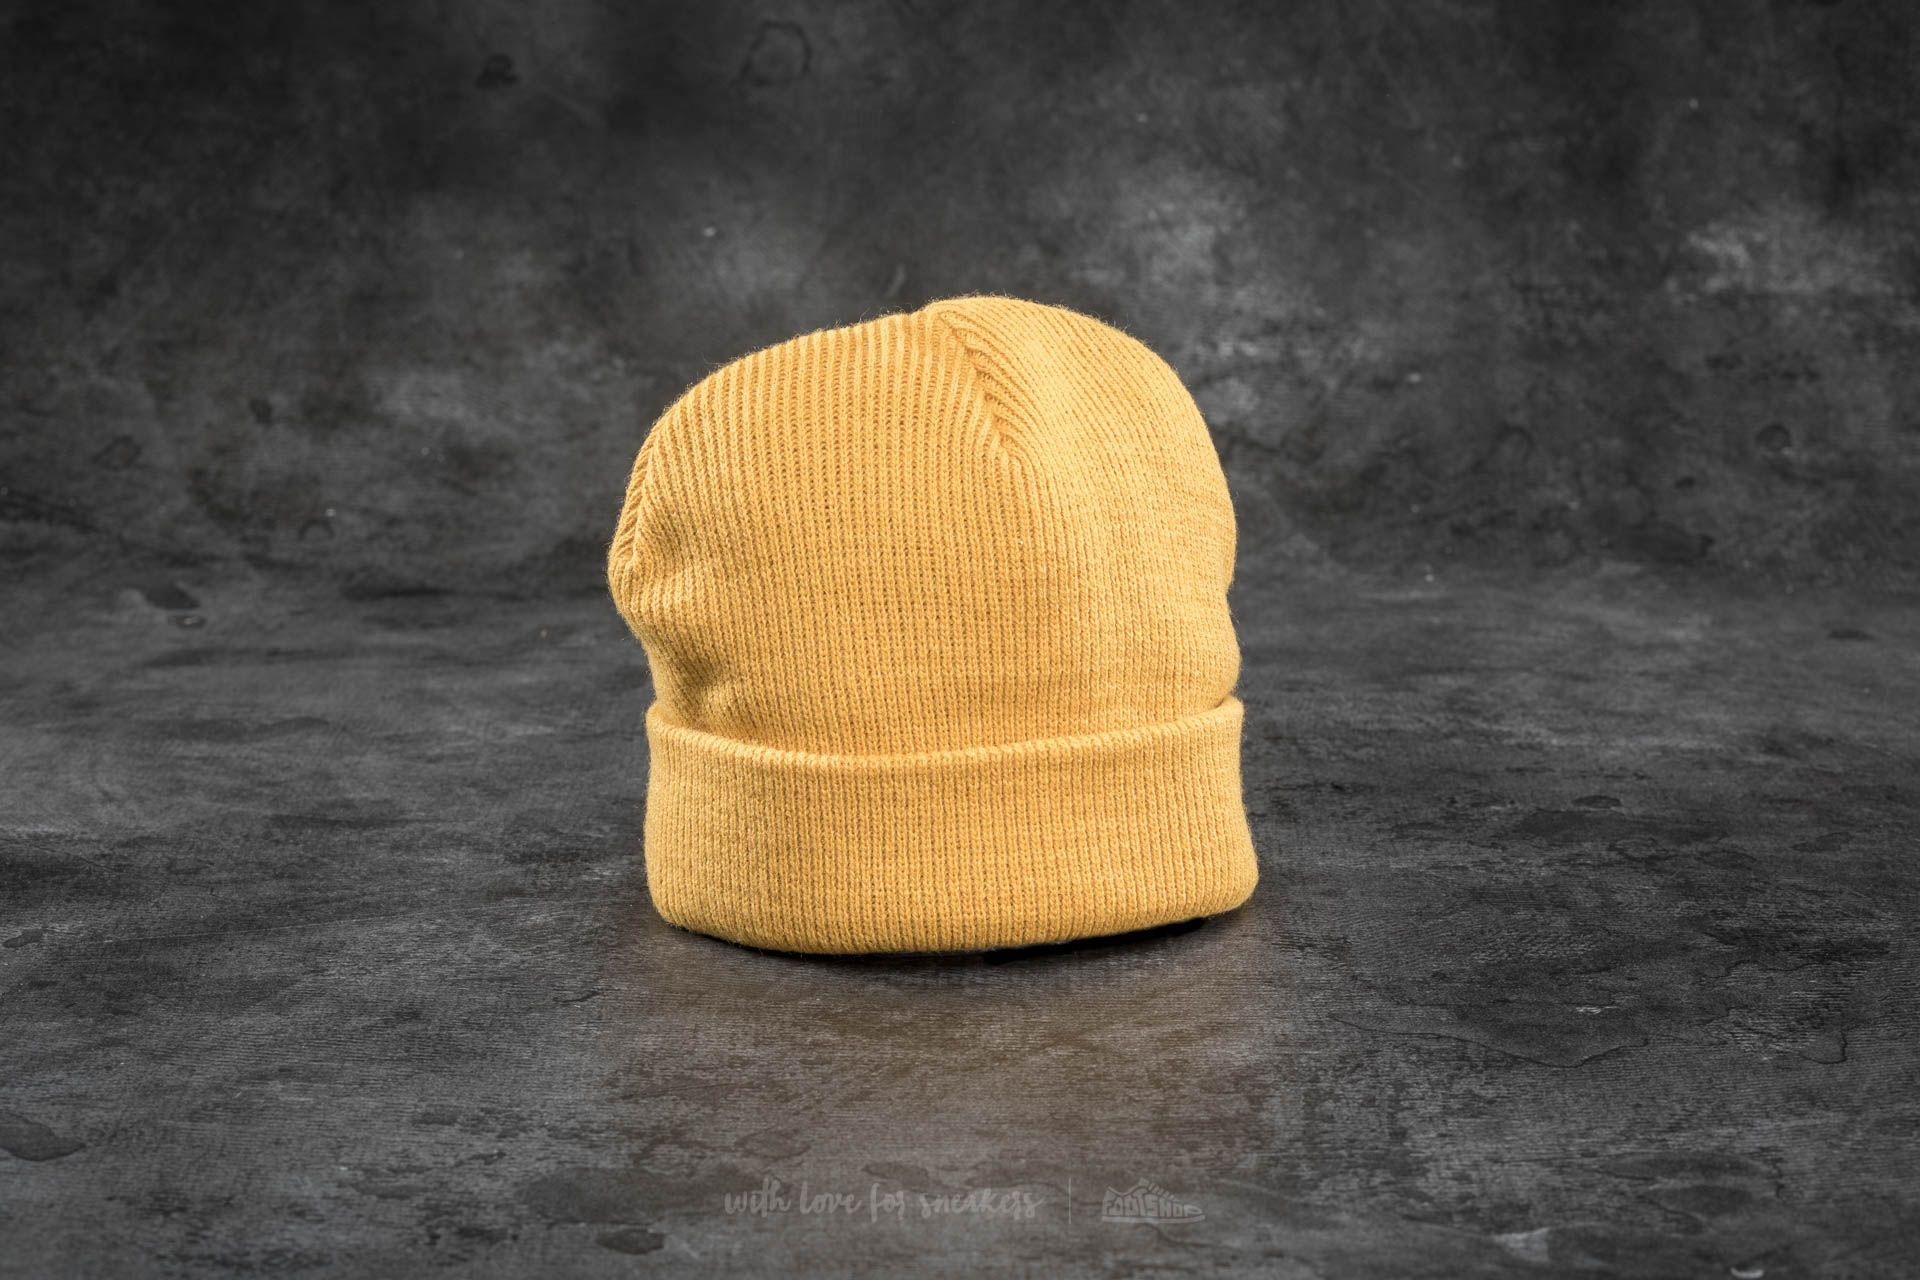 8d66cf76a87 Lyst - Vans X Peanuts Beanie Mineral Yellow in Yellow